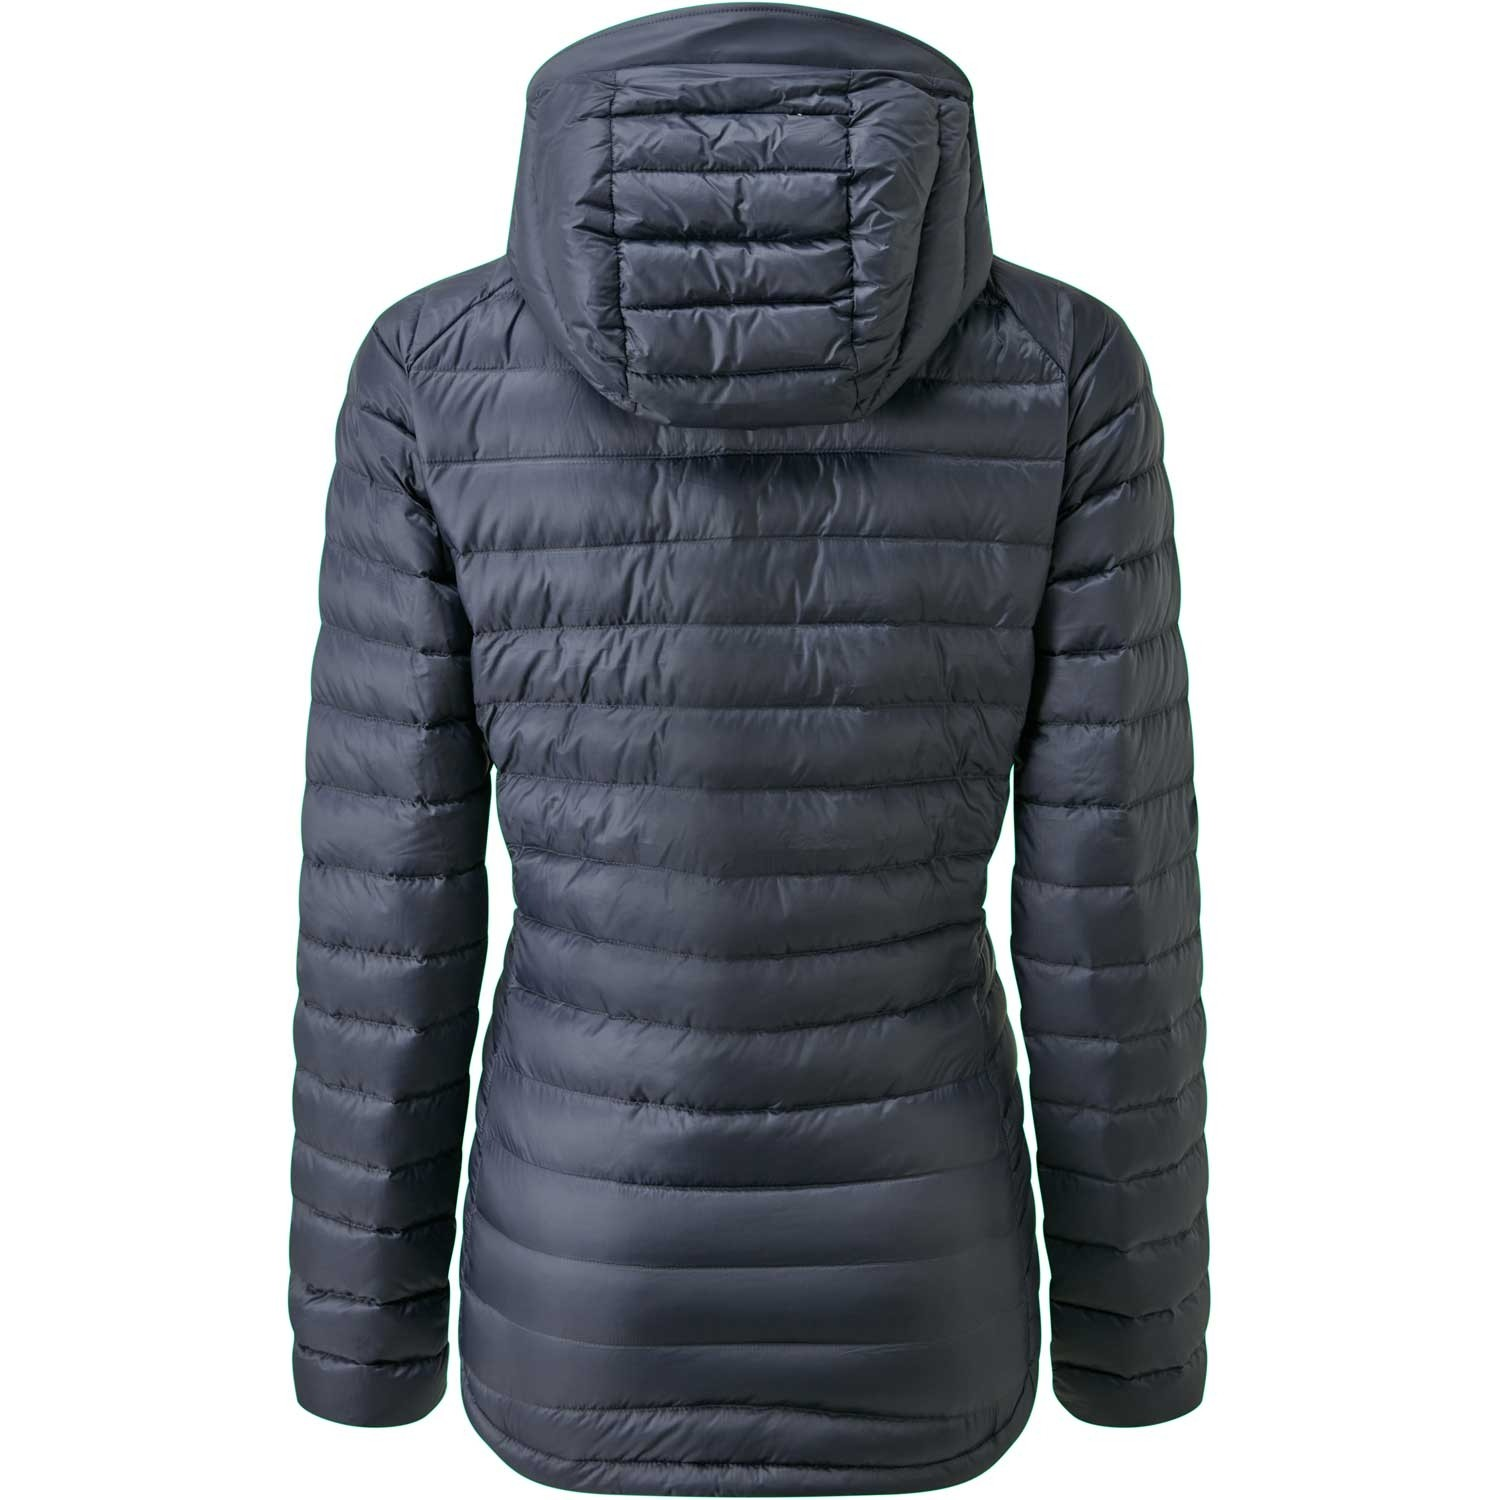 Rab Microlight Alpine Down Jacket - Women's - Steel